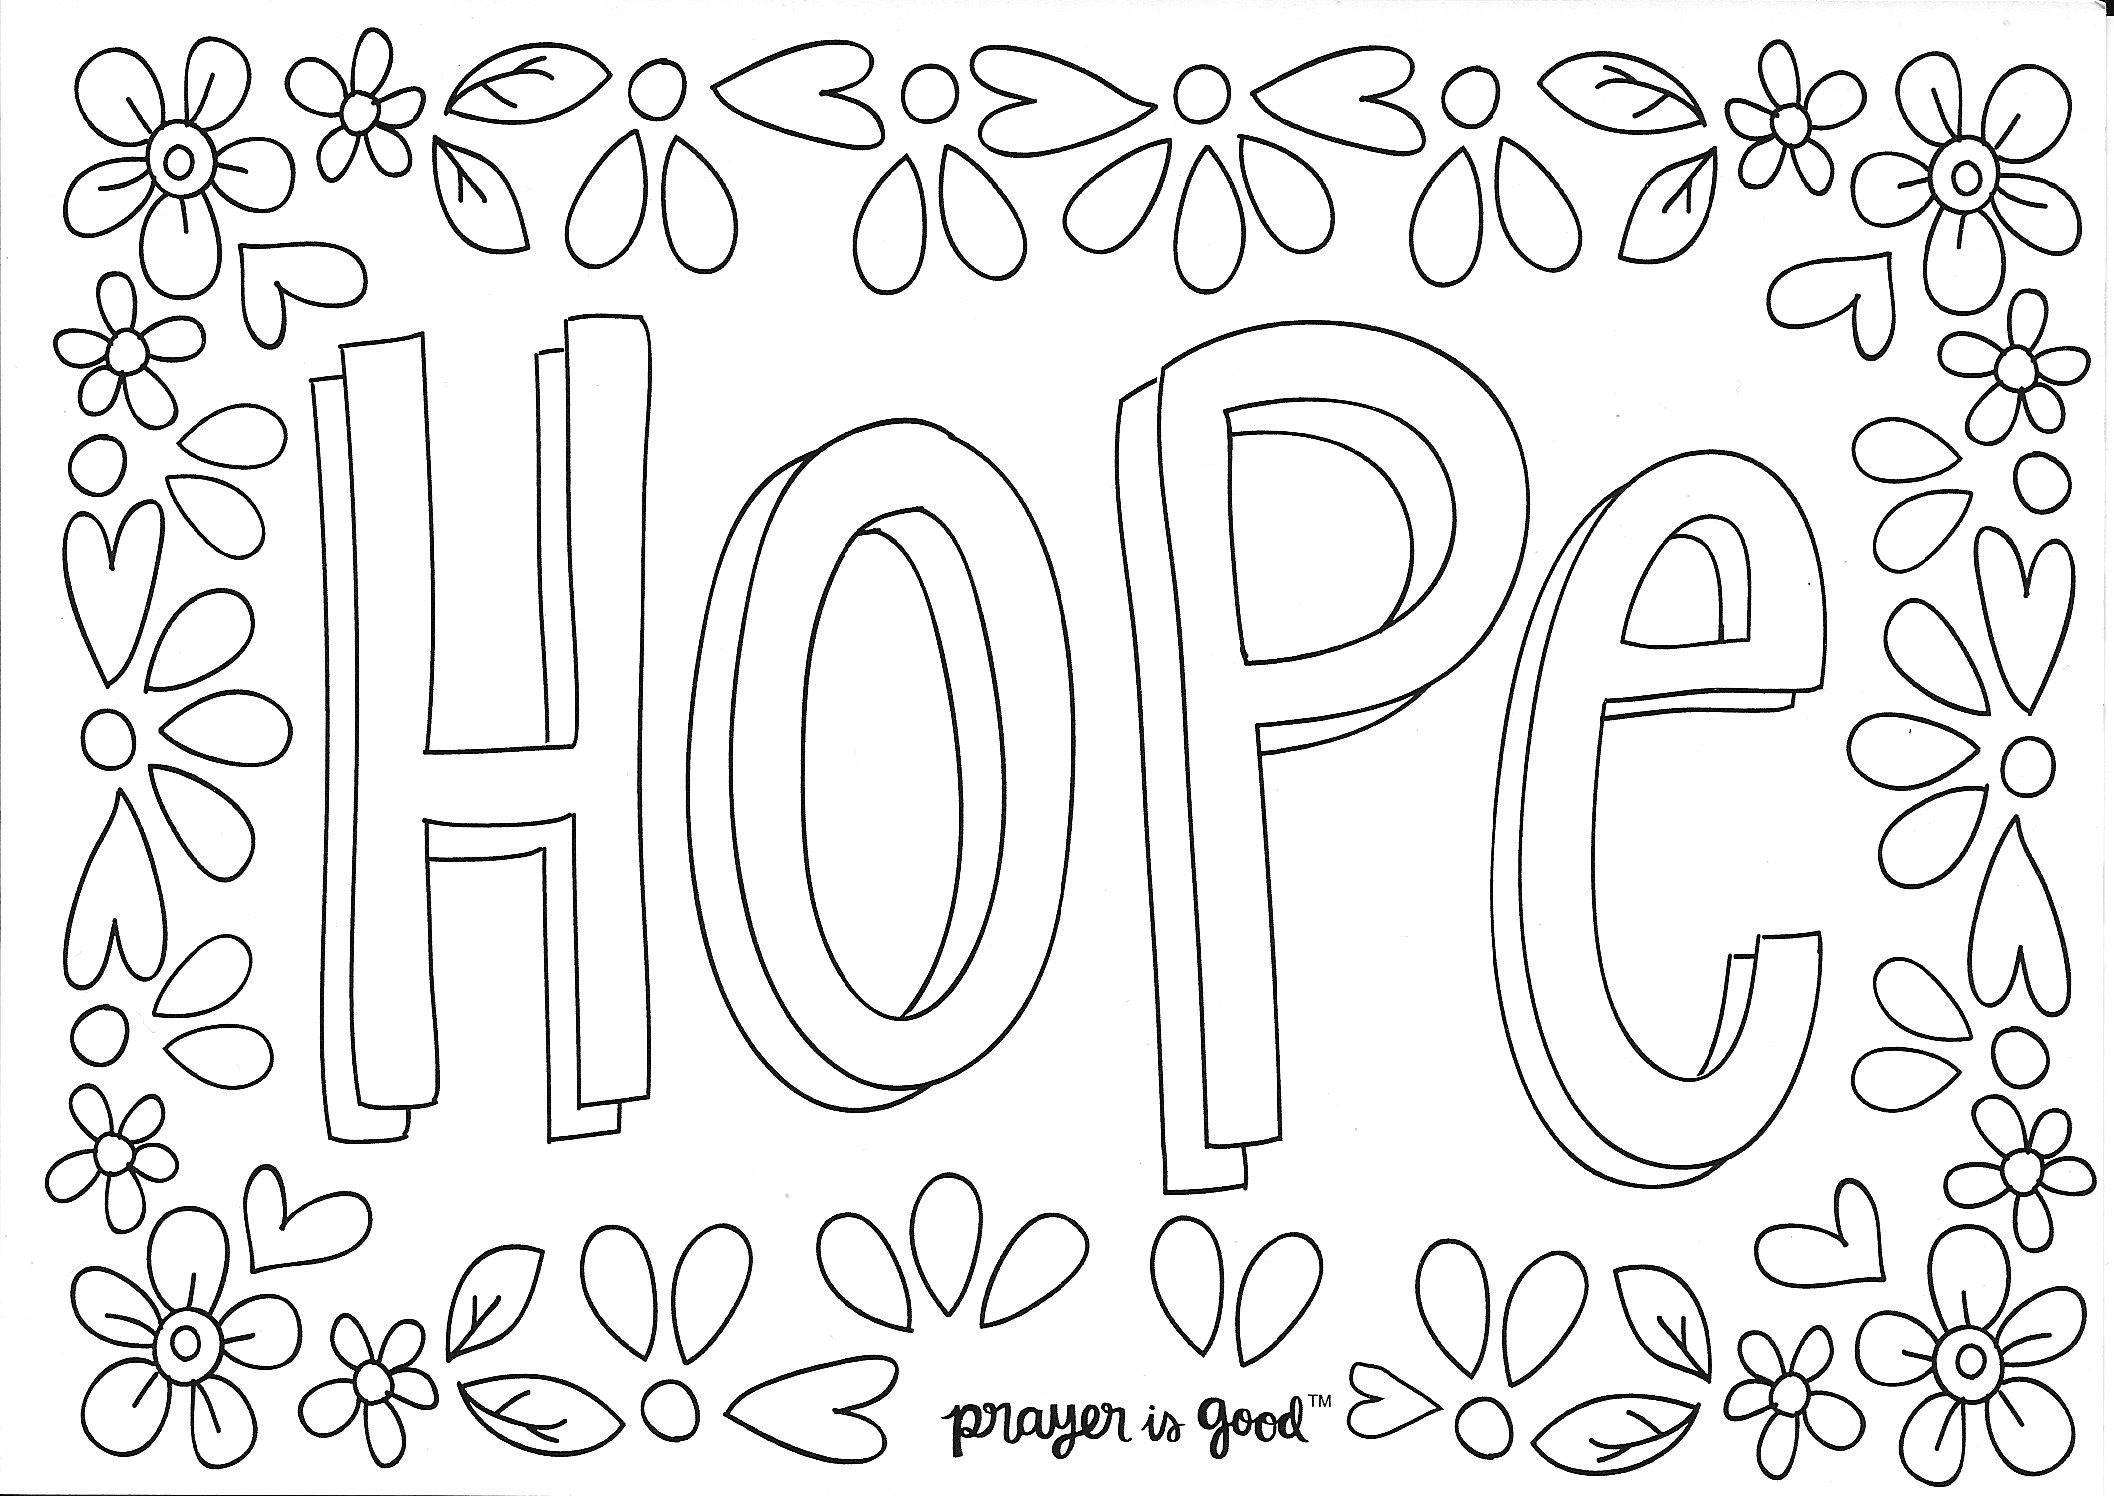 Products Quote Coloring Pages Bible Coloring Pages Coloring